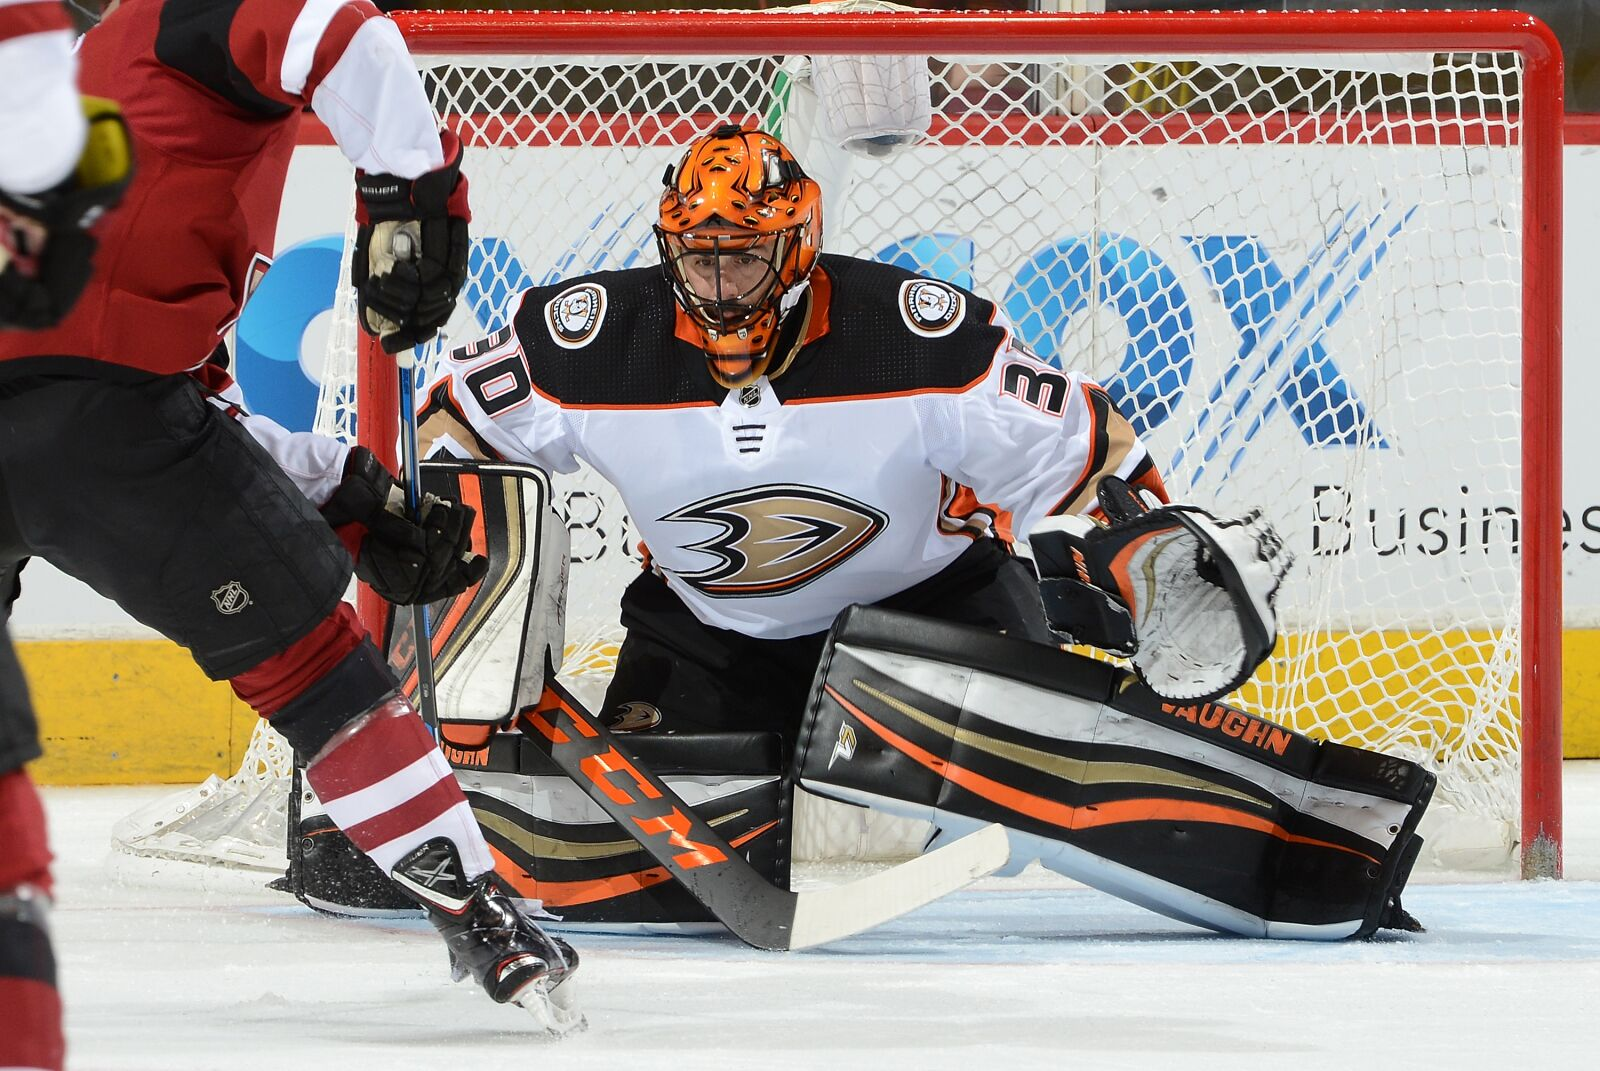 943939994-anaheim-ducks-v-arizona-coyotes.jpg